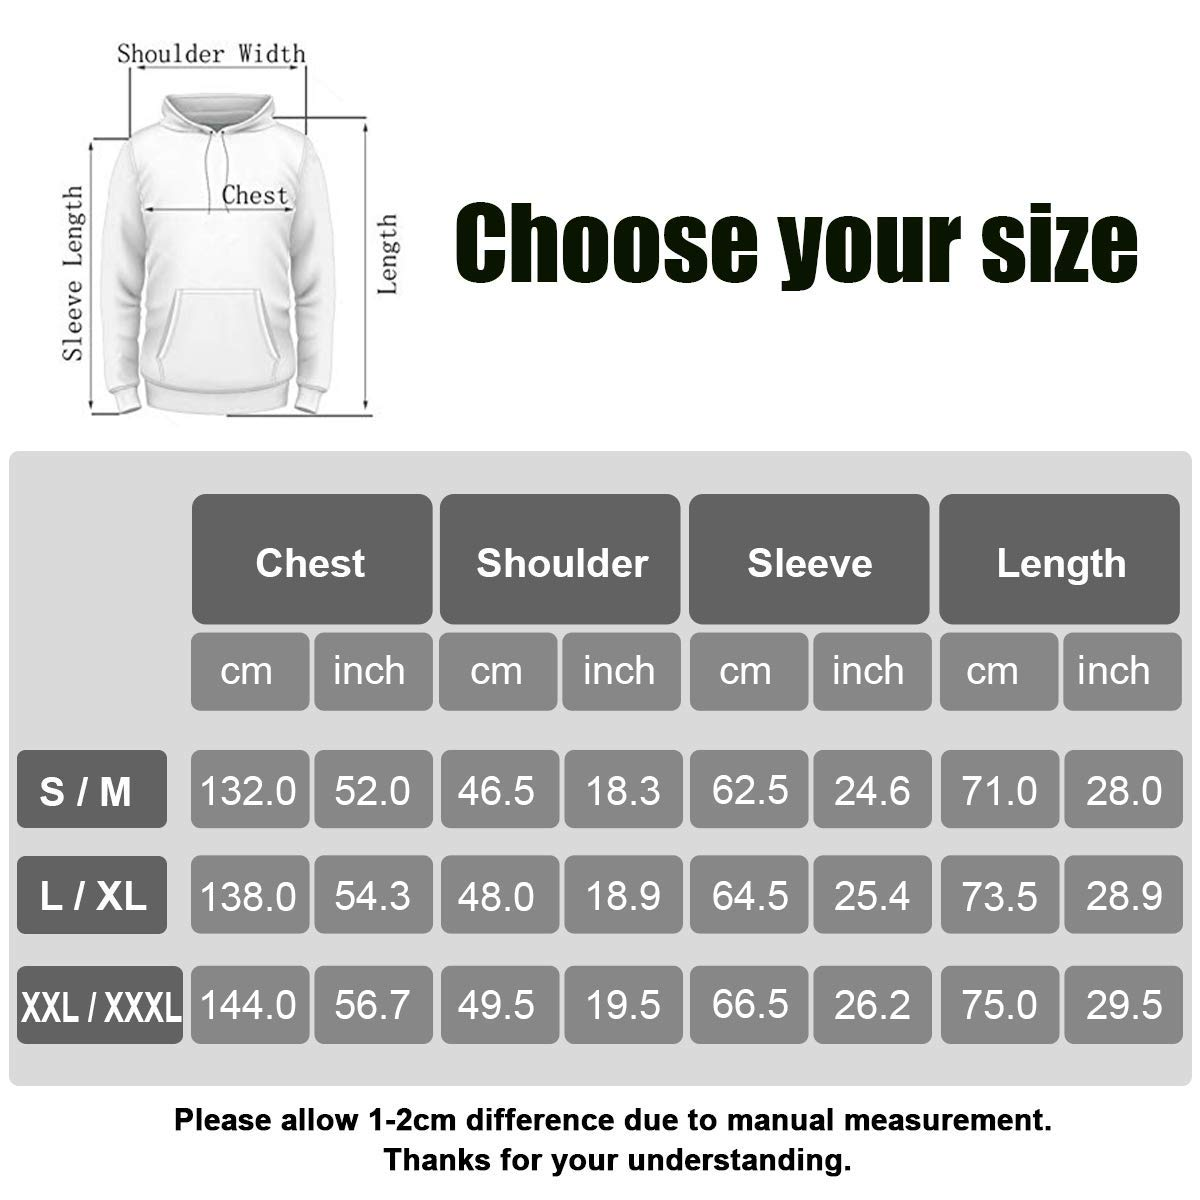 Sweater Air 3D Graphic Printed Hoodies for Men Women Unisex Pullover Hooded Shirts On Womens Professional Men Sweaters with Adult Deeign Aire Deaign 140 Pack Large Designs Stylish Shirt Women Thin